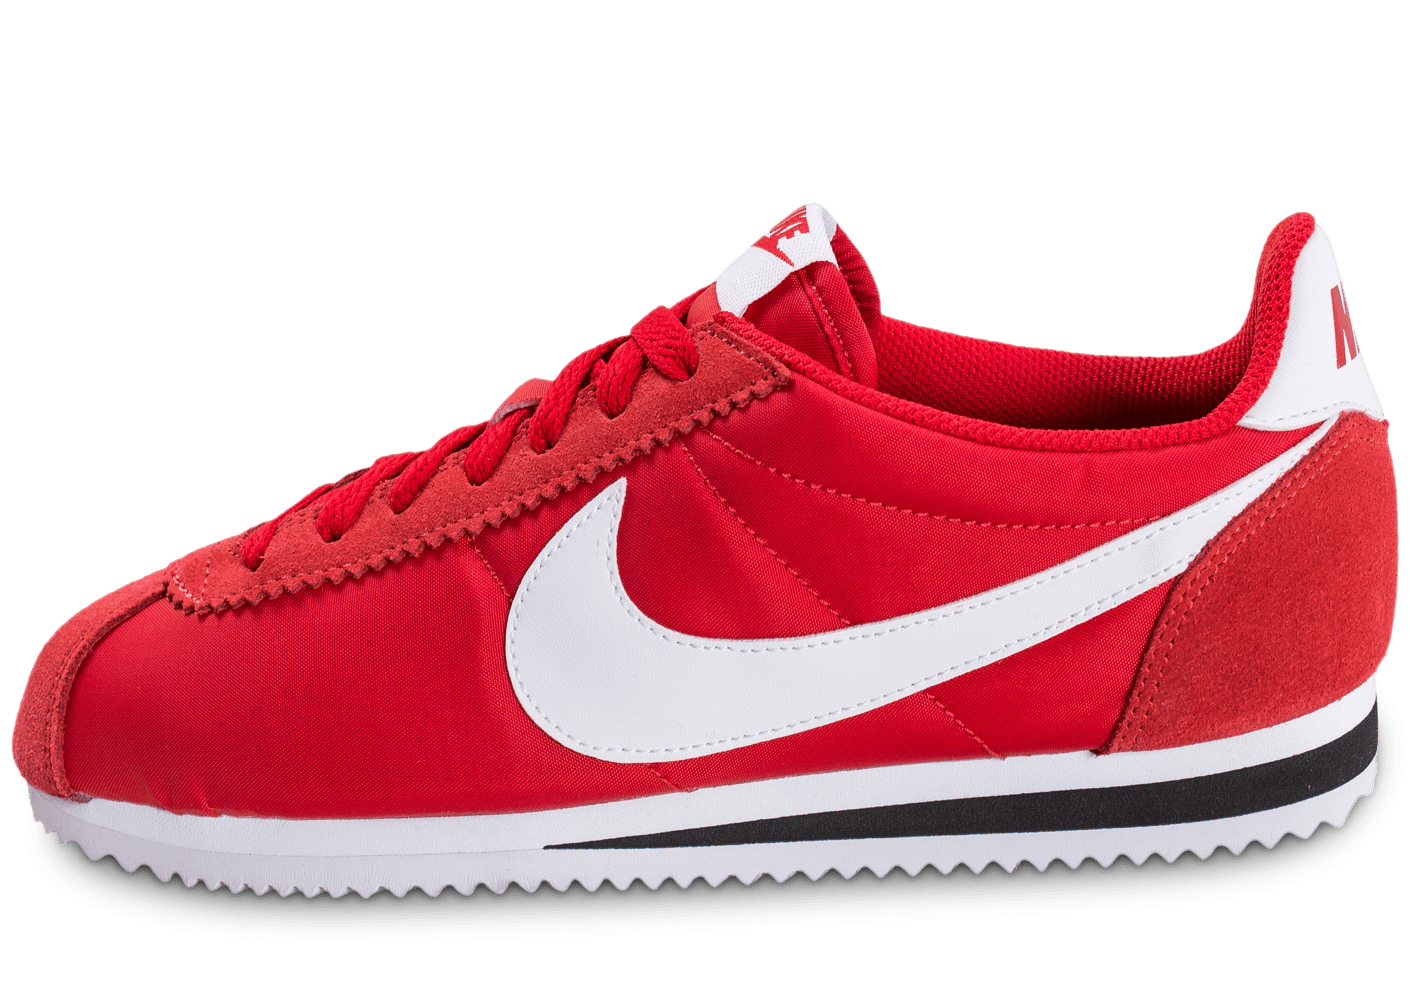 nike cortez nylon rouge chaussures homme chausport. Black Bedroom Furniture Sets. Home Design Ideas